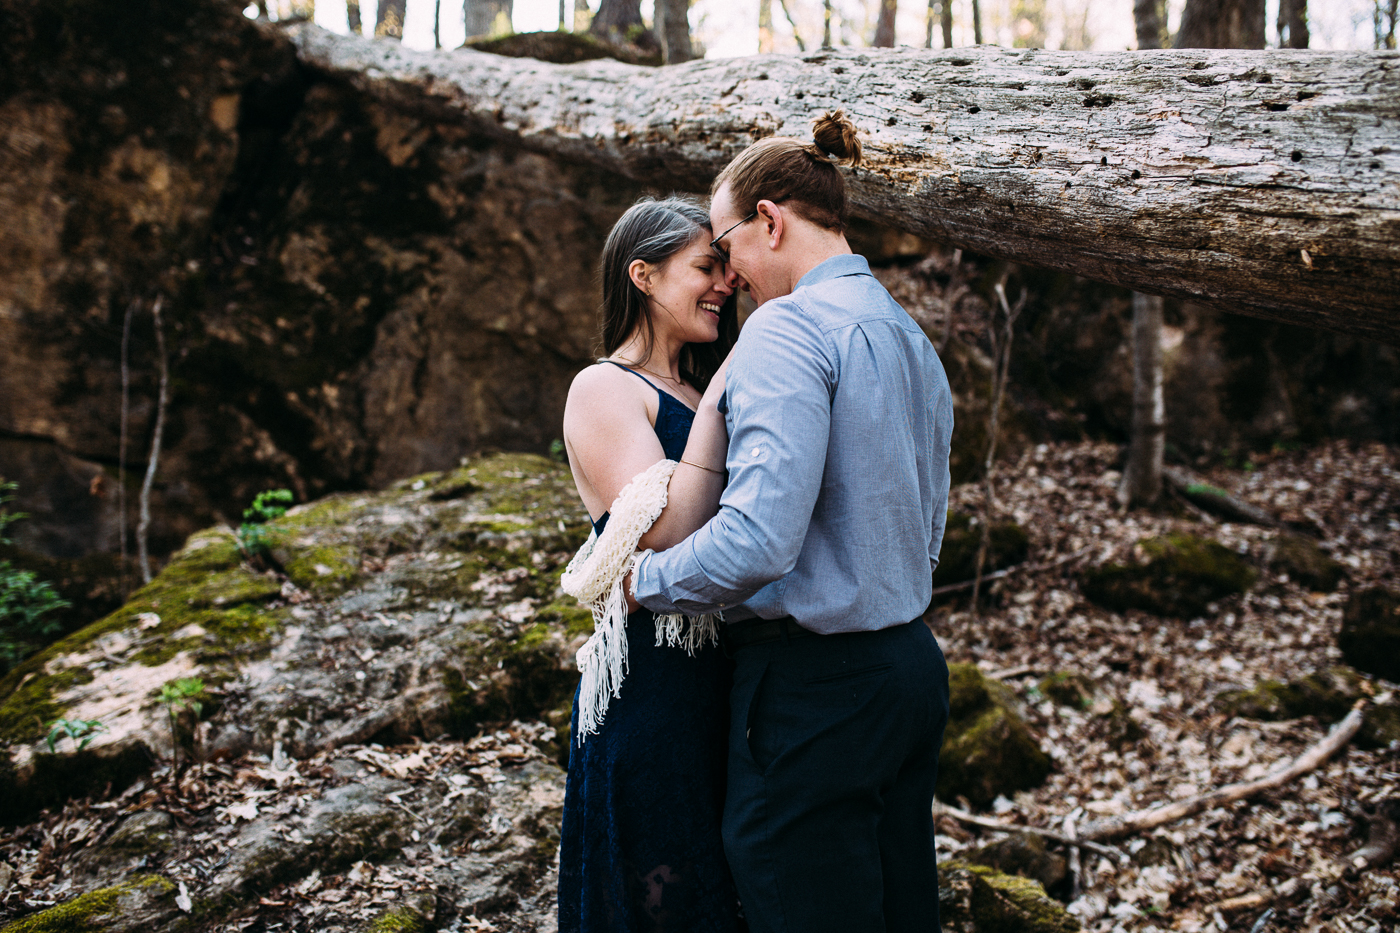 erinwheat photography-jplaurenelopement7161